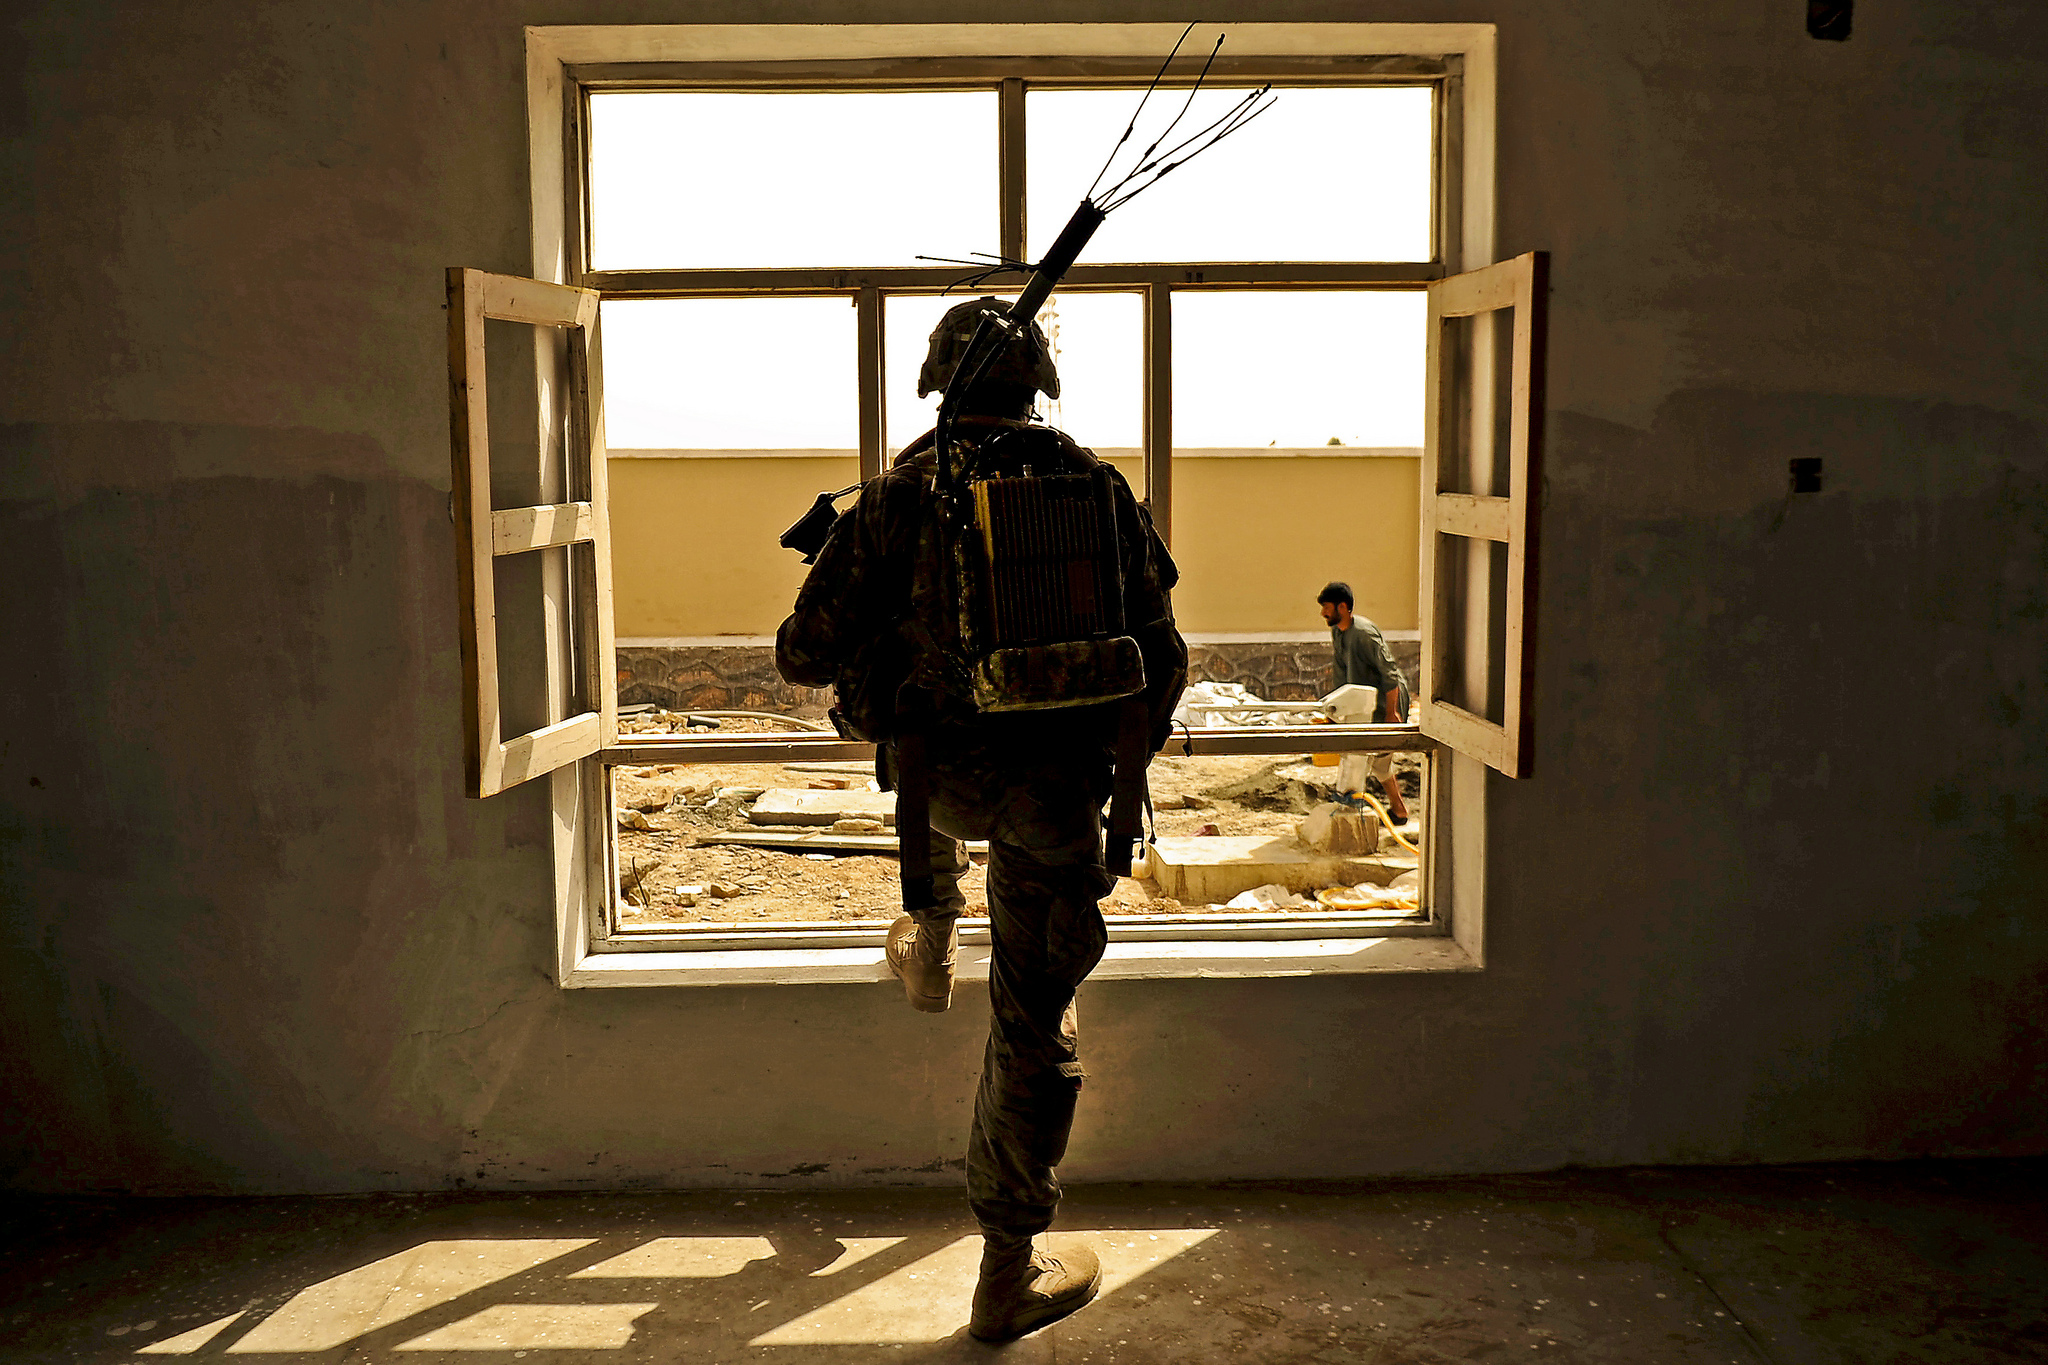 Alaskan National Guard Pvt. Lathaniel Ulofoshio provides security for fellow members of Kandahar Provincial Reconstruction Team while conducting a site survey of the Sanjaray health clinic May 24, 2012 in Kandahar, Afghanistan. Flickr / The U.S. Army